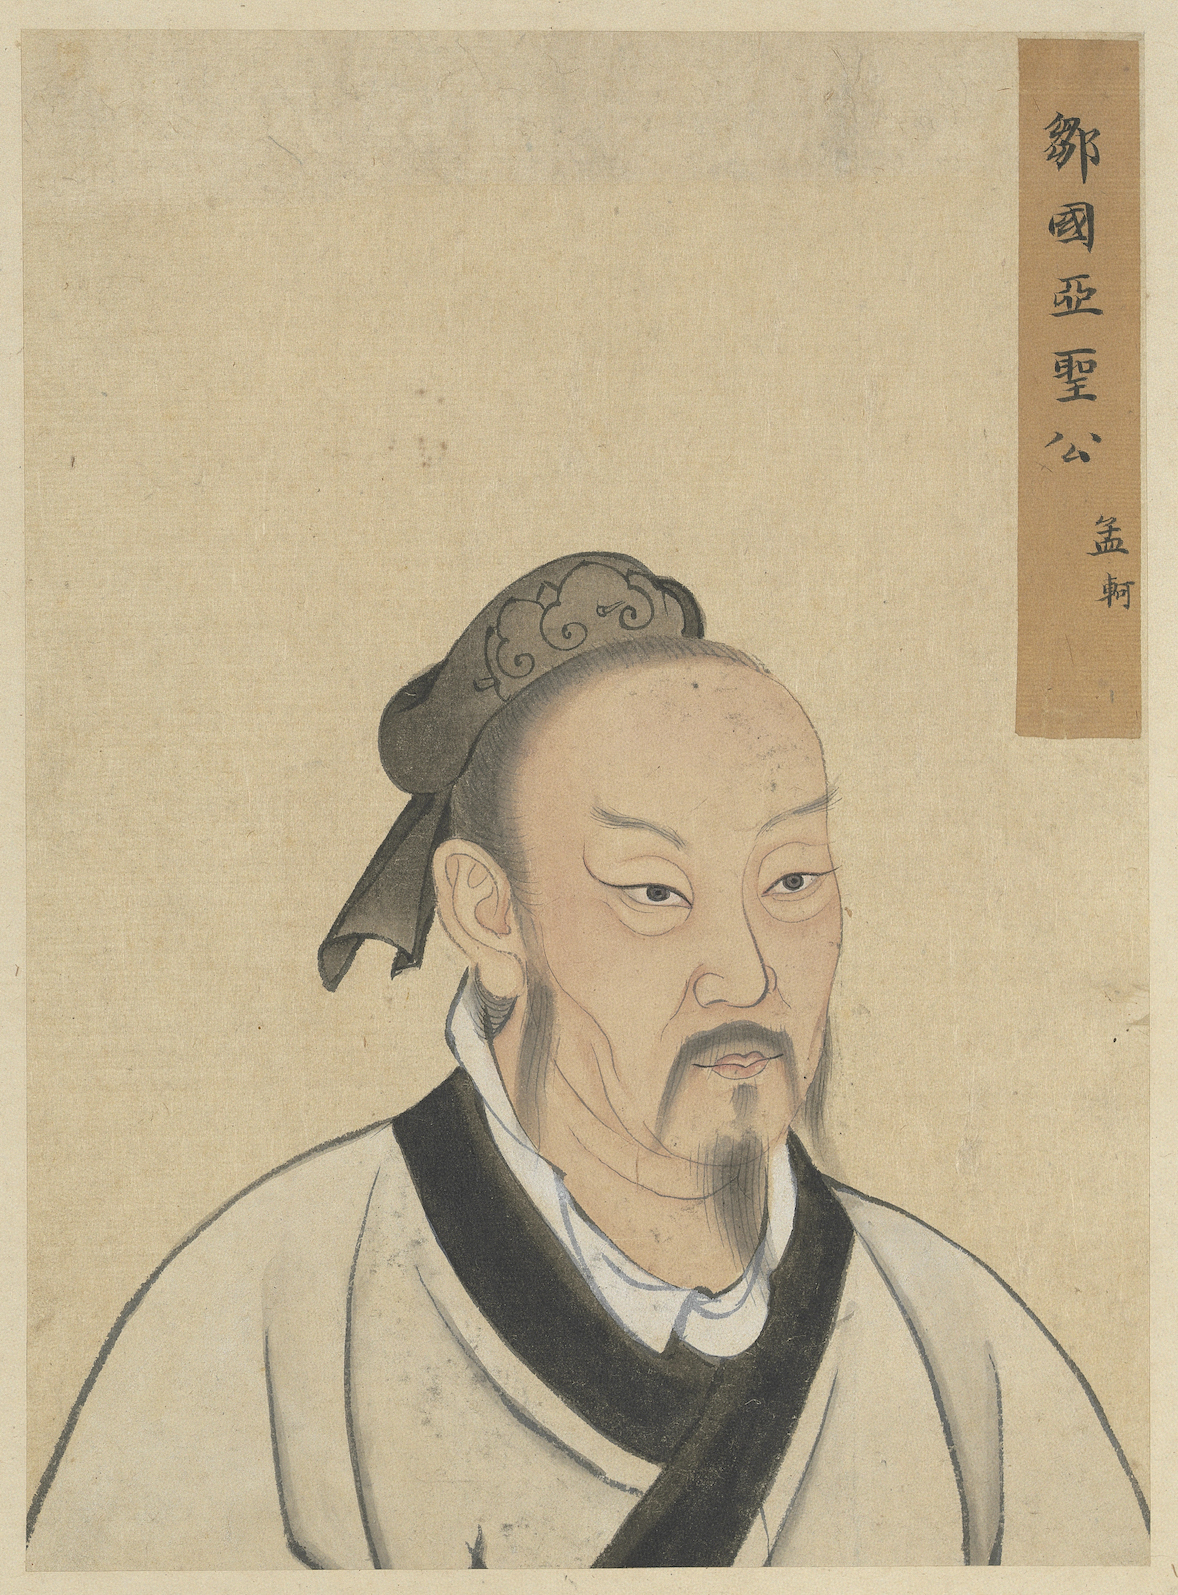 the life of the philosopher mencius a disciple of confucius Mencius was a follower and disciple of confucius the life of buddha in legend mencius, 372-289 bc chinese philosopher who has often been described as the.